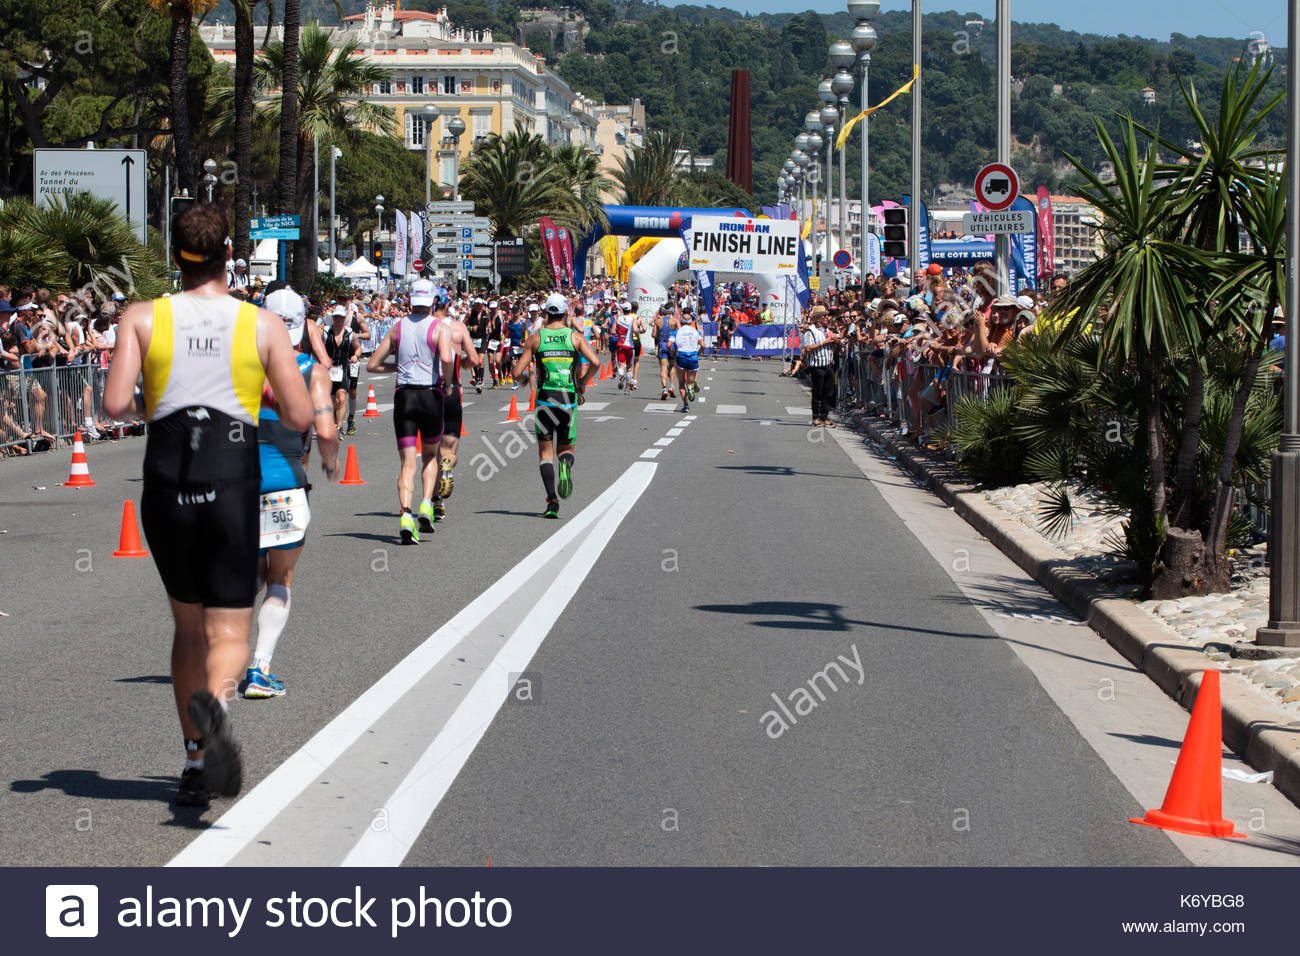 Competitors head towards the finish line after running a full marathon as part of the Nice Ironman Triathlon - Stock Image